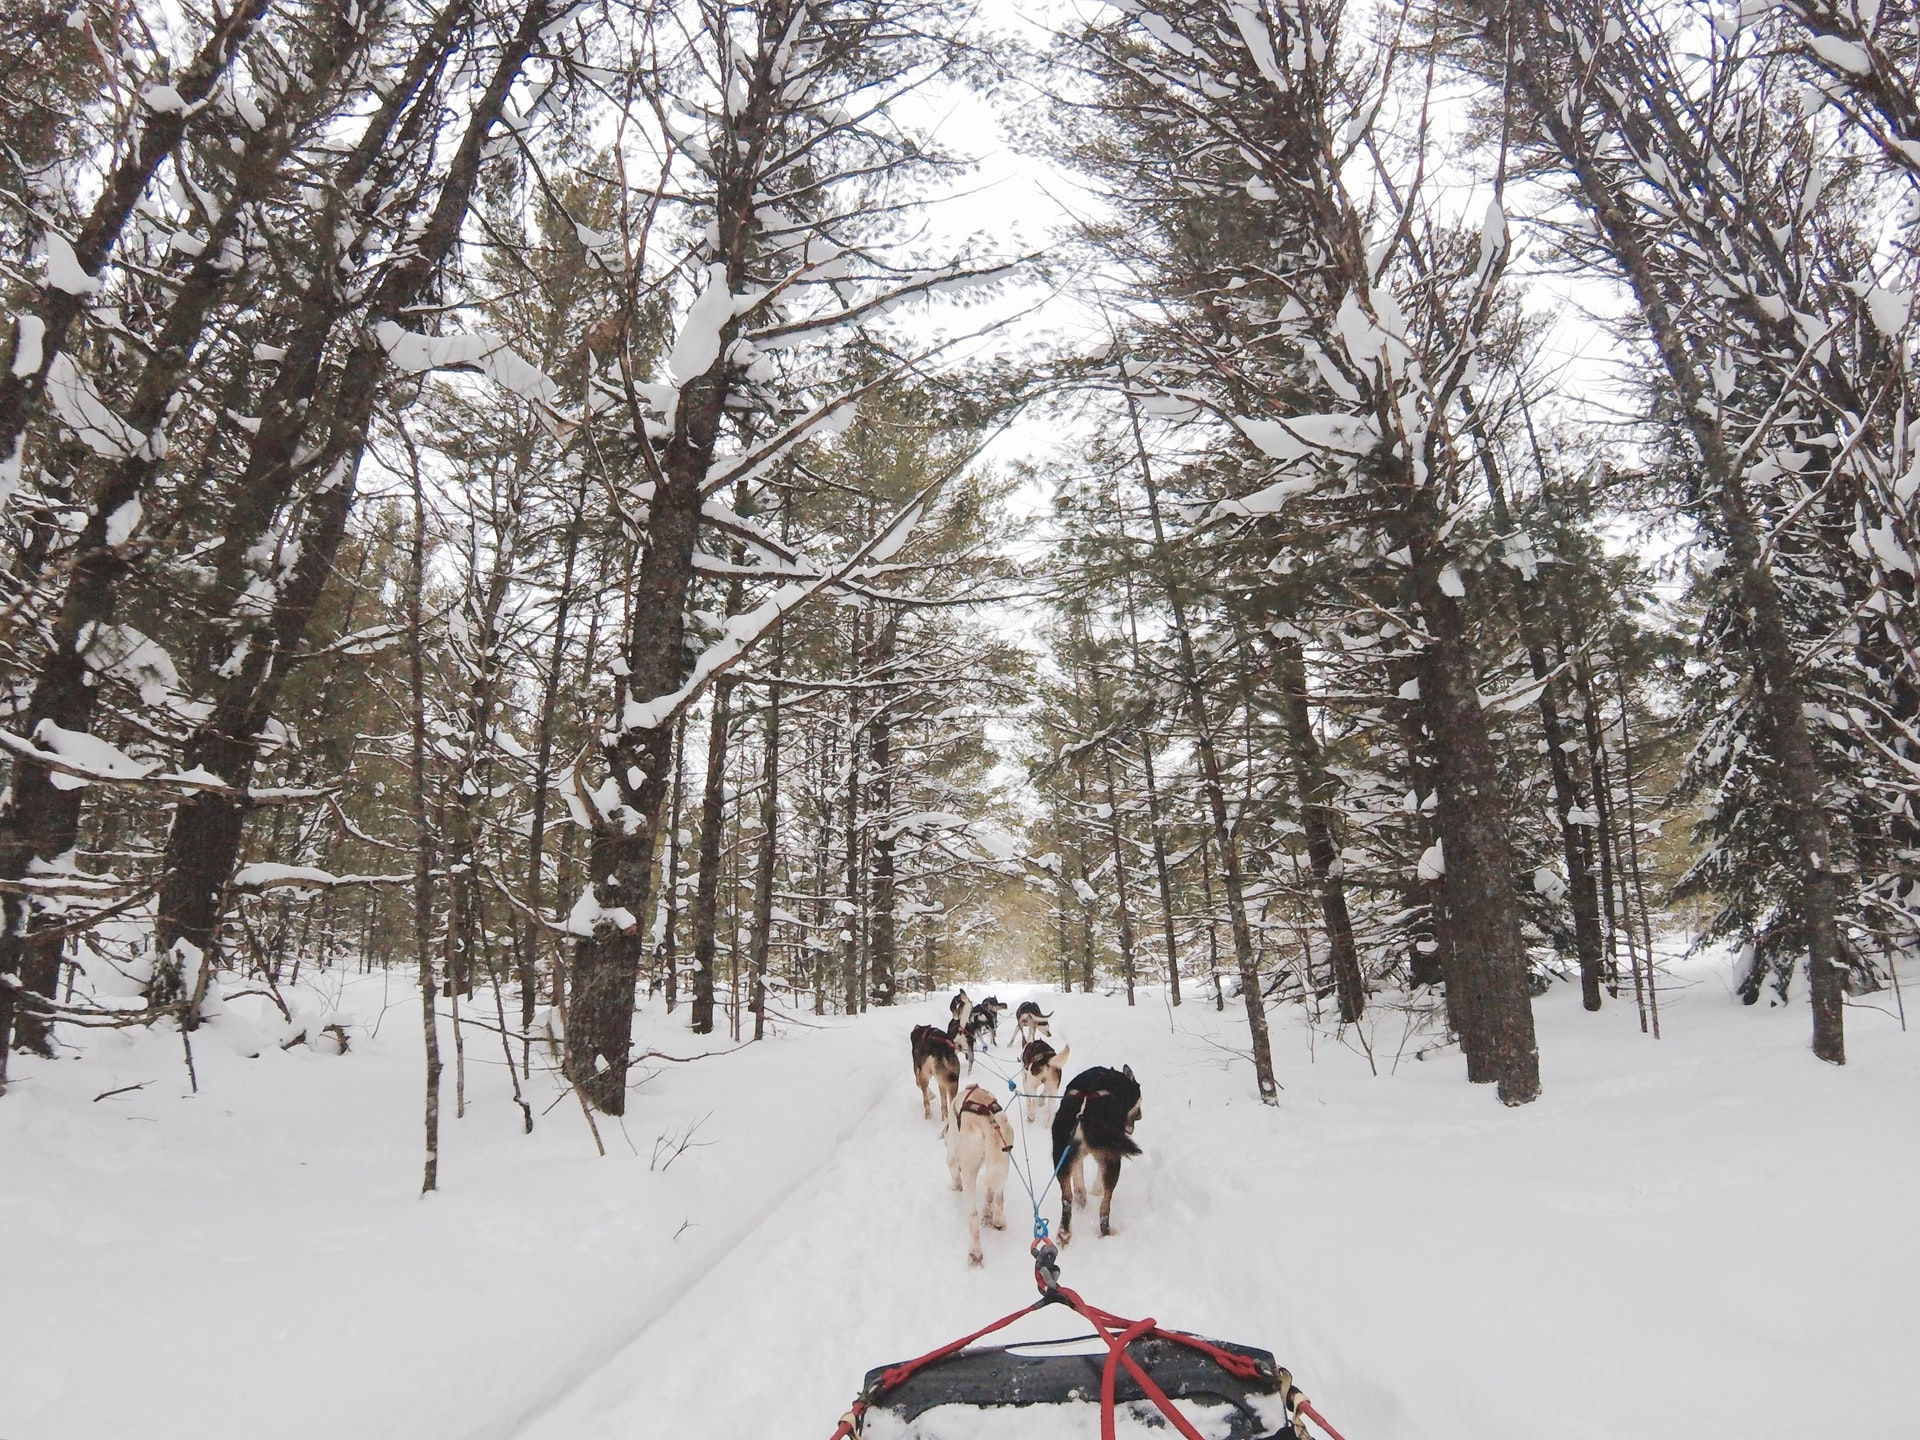 Husky dogs on a snowy trail